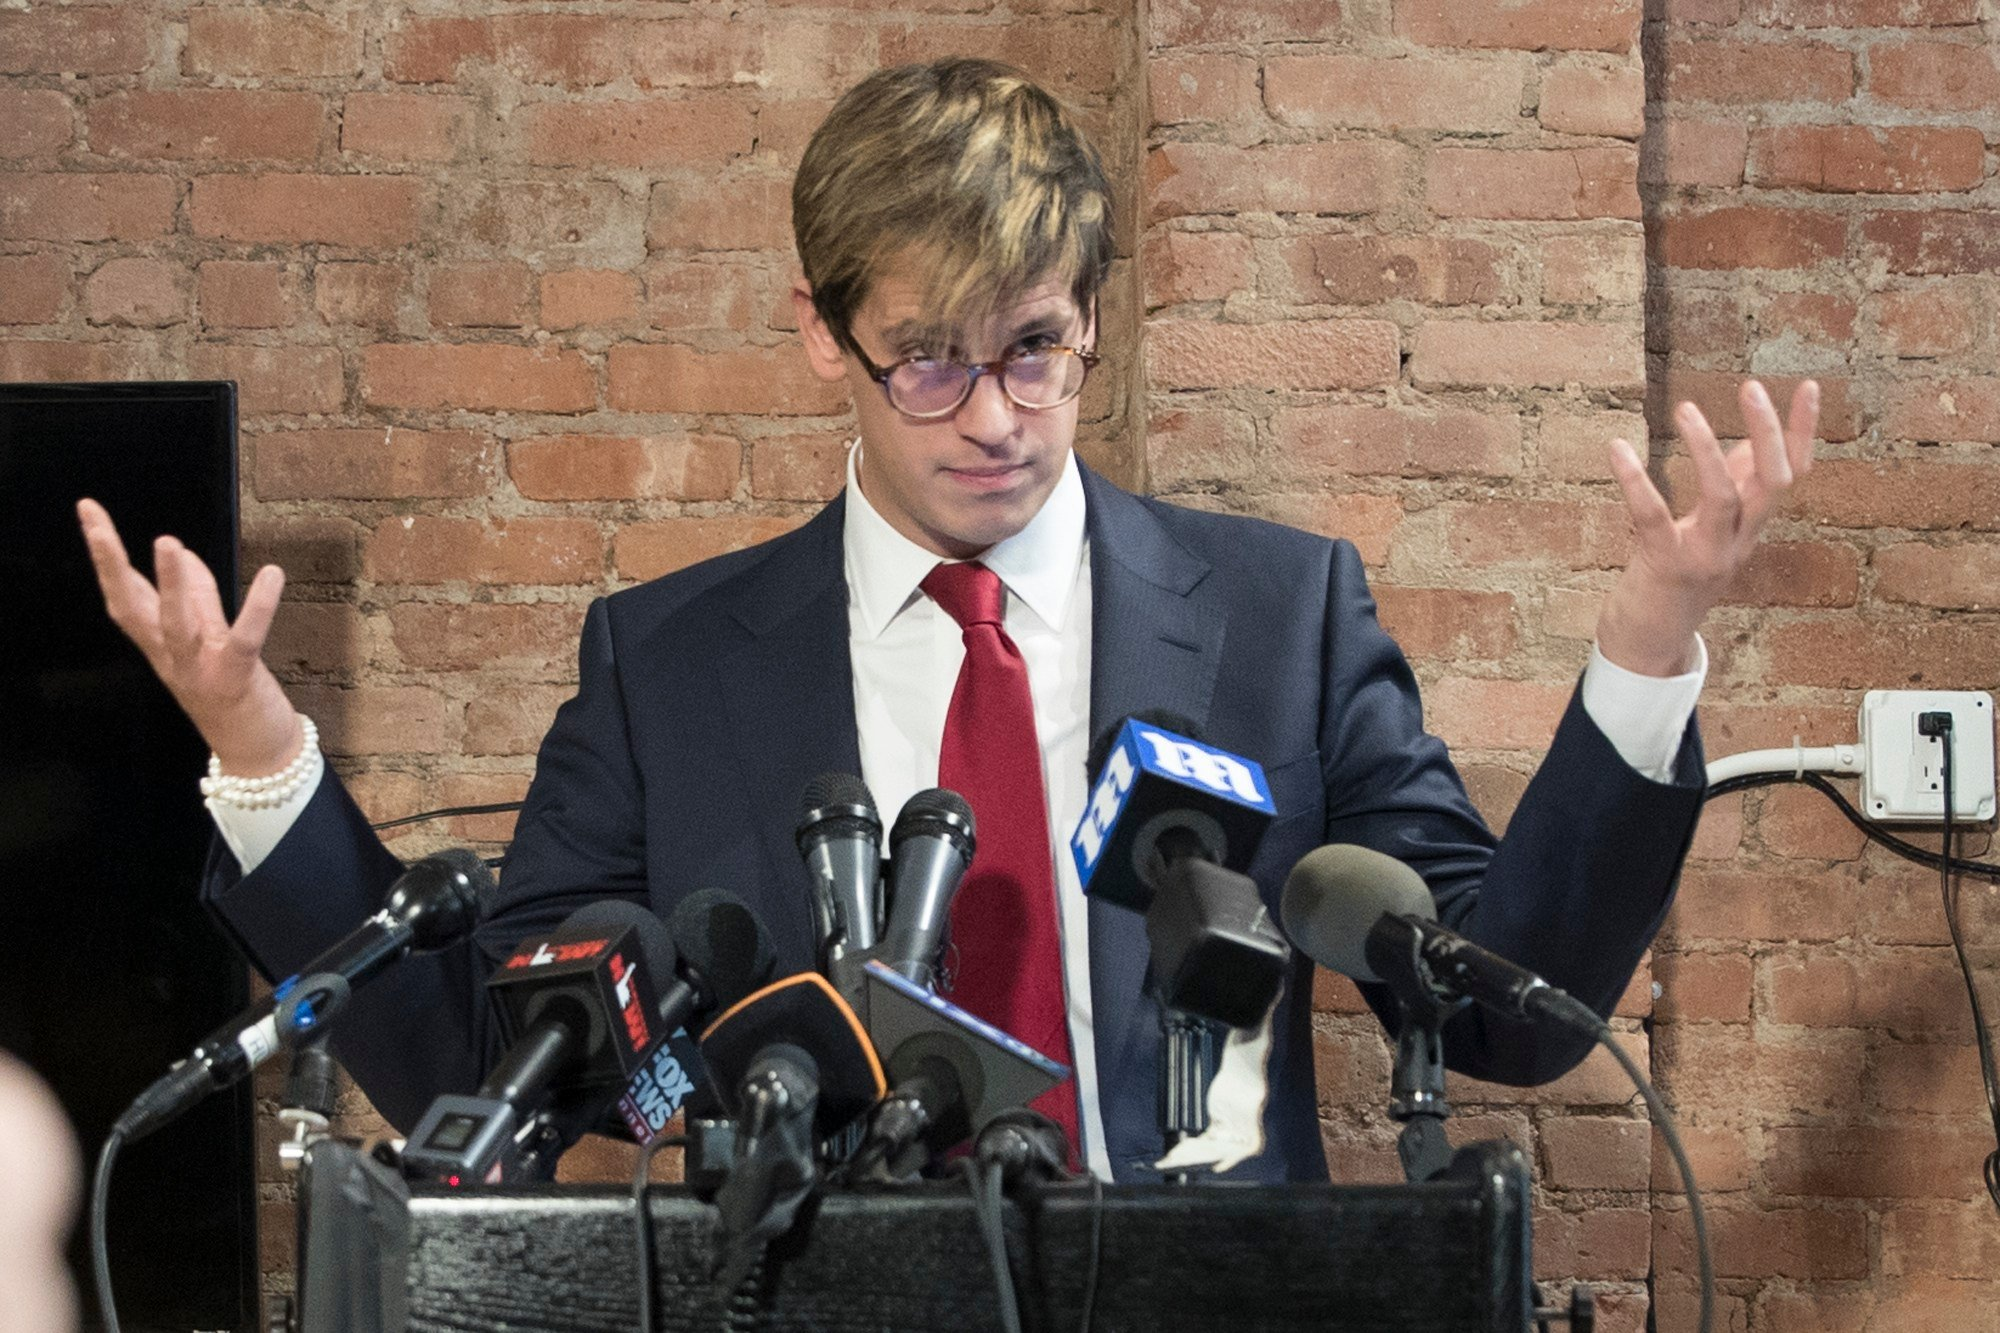 Milo Yiannopoulos speaks during a news conference (AP Photo/Mary Altaffer)